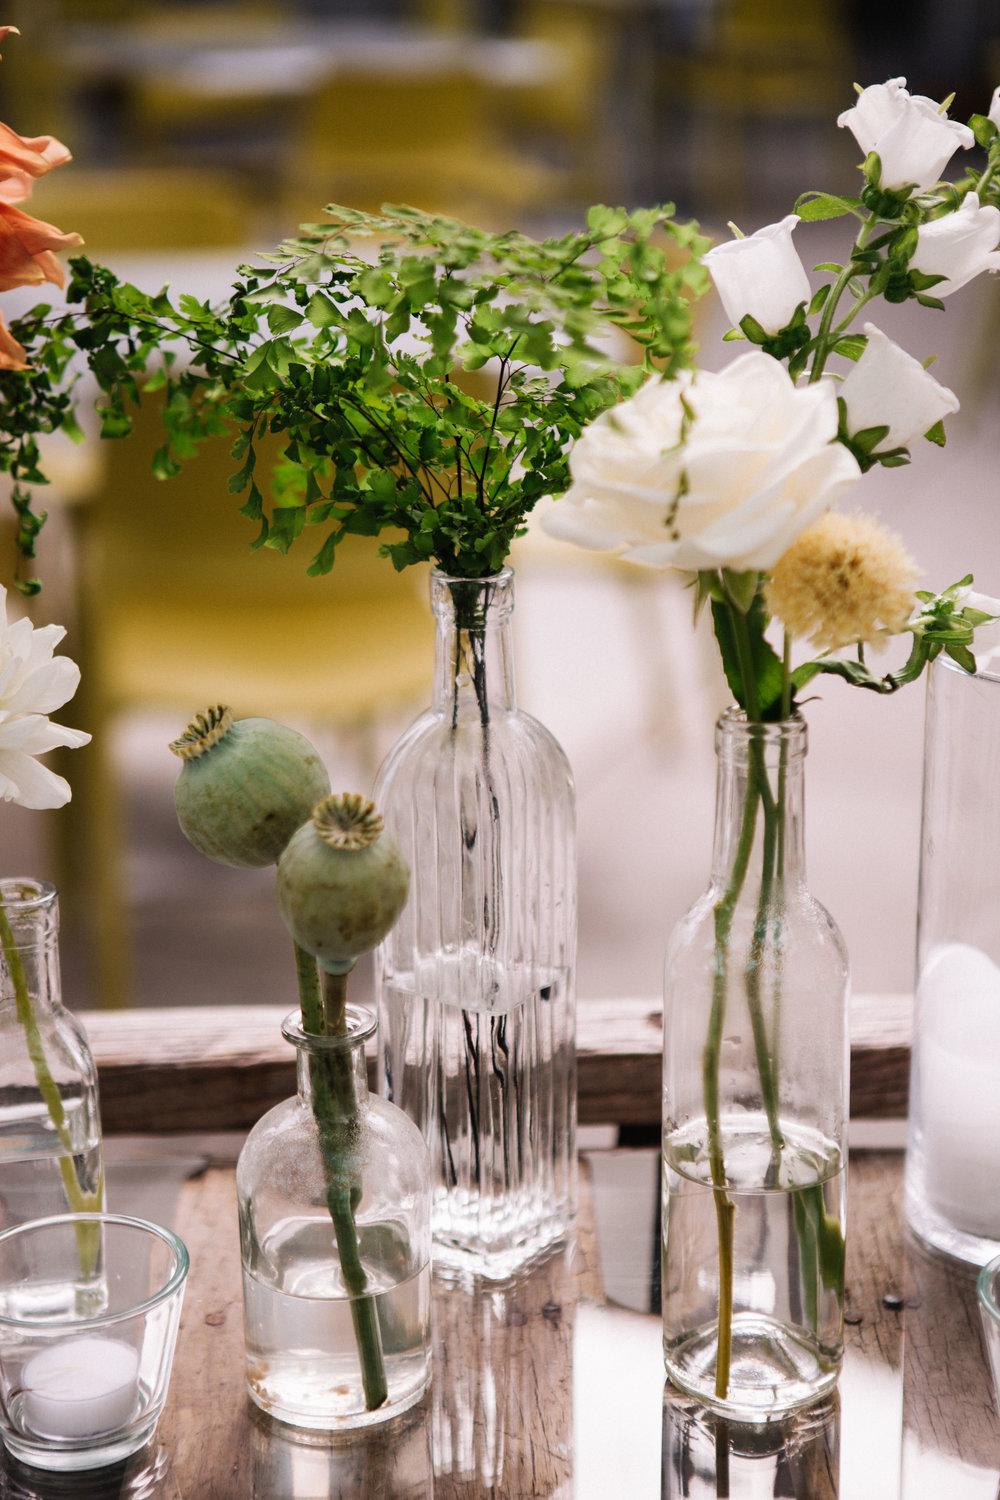 chihuly-gardens-and-glass-seattle-weddings-decor-amy-and-jeremy_6879.JPG